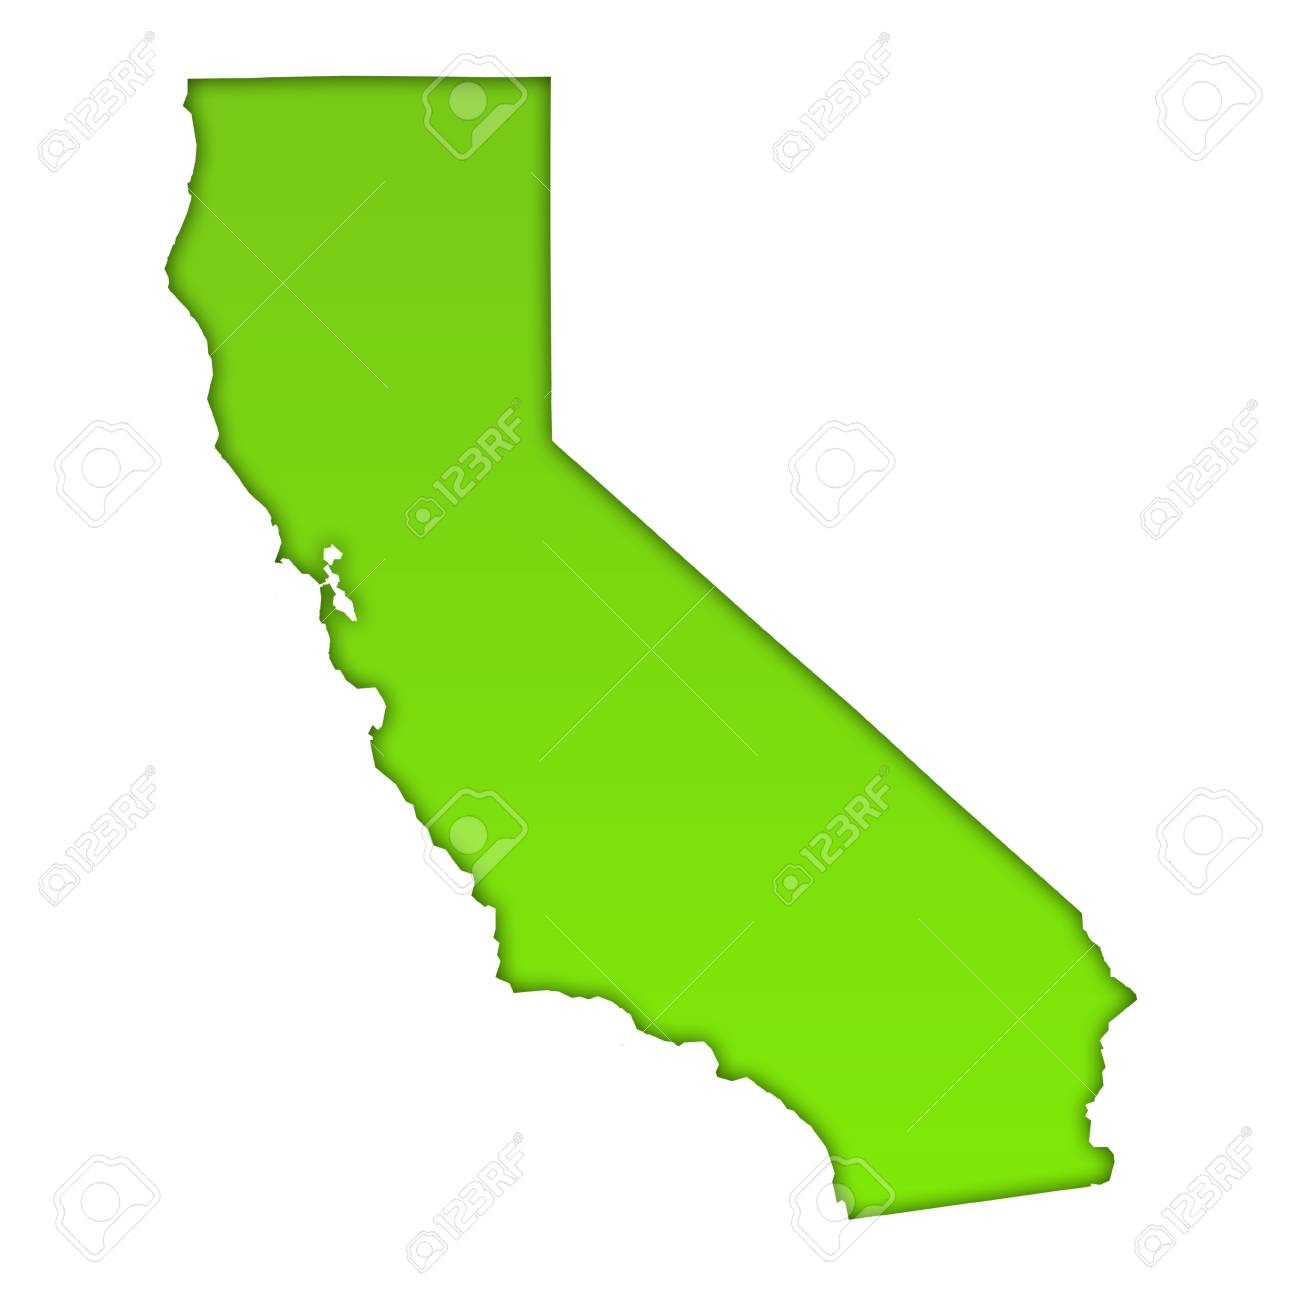 California Map Icon.California Country Map Icon Stock Photo Picture And Royalty Free